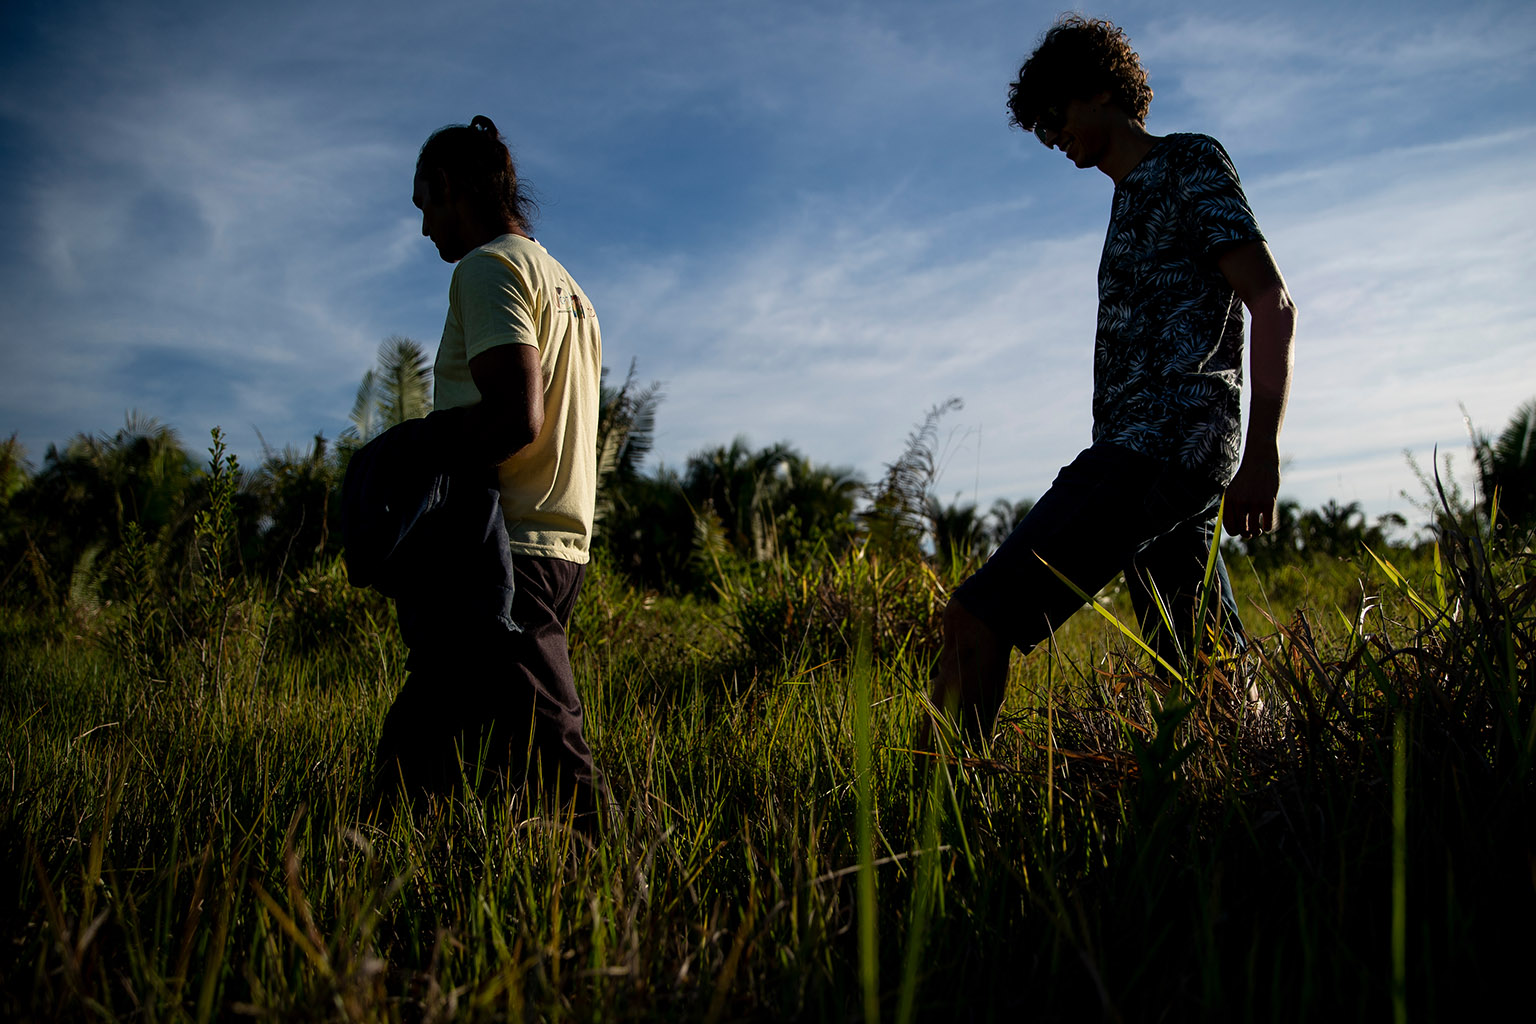 Fernando Araújo walks near the site of a 2017 massacre of rural workers in Pau D'Arco, Brazil with José Vargas, a lawyer for victims of the massacre, on Sunday, June 9, 2019. Fernando survived after hiding in the brush while ten other workers were killed.